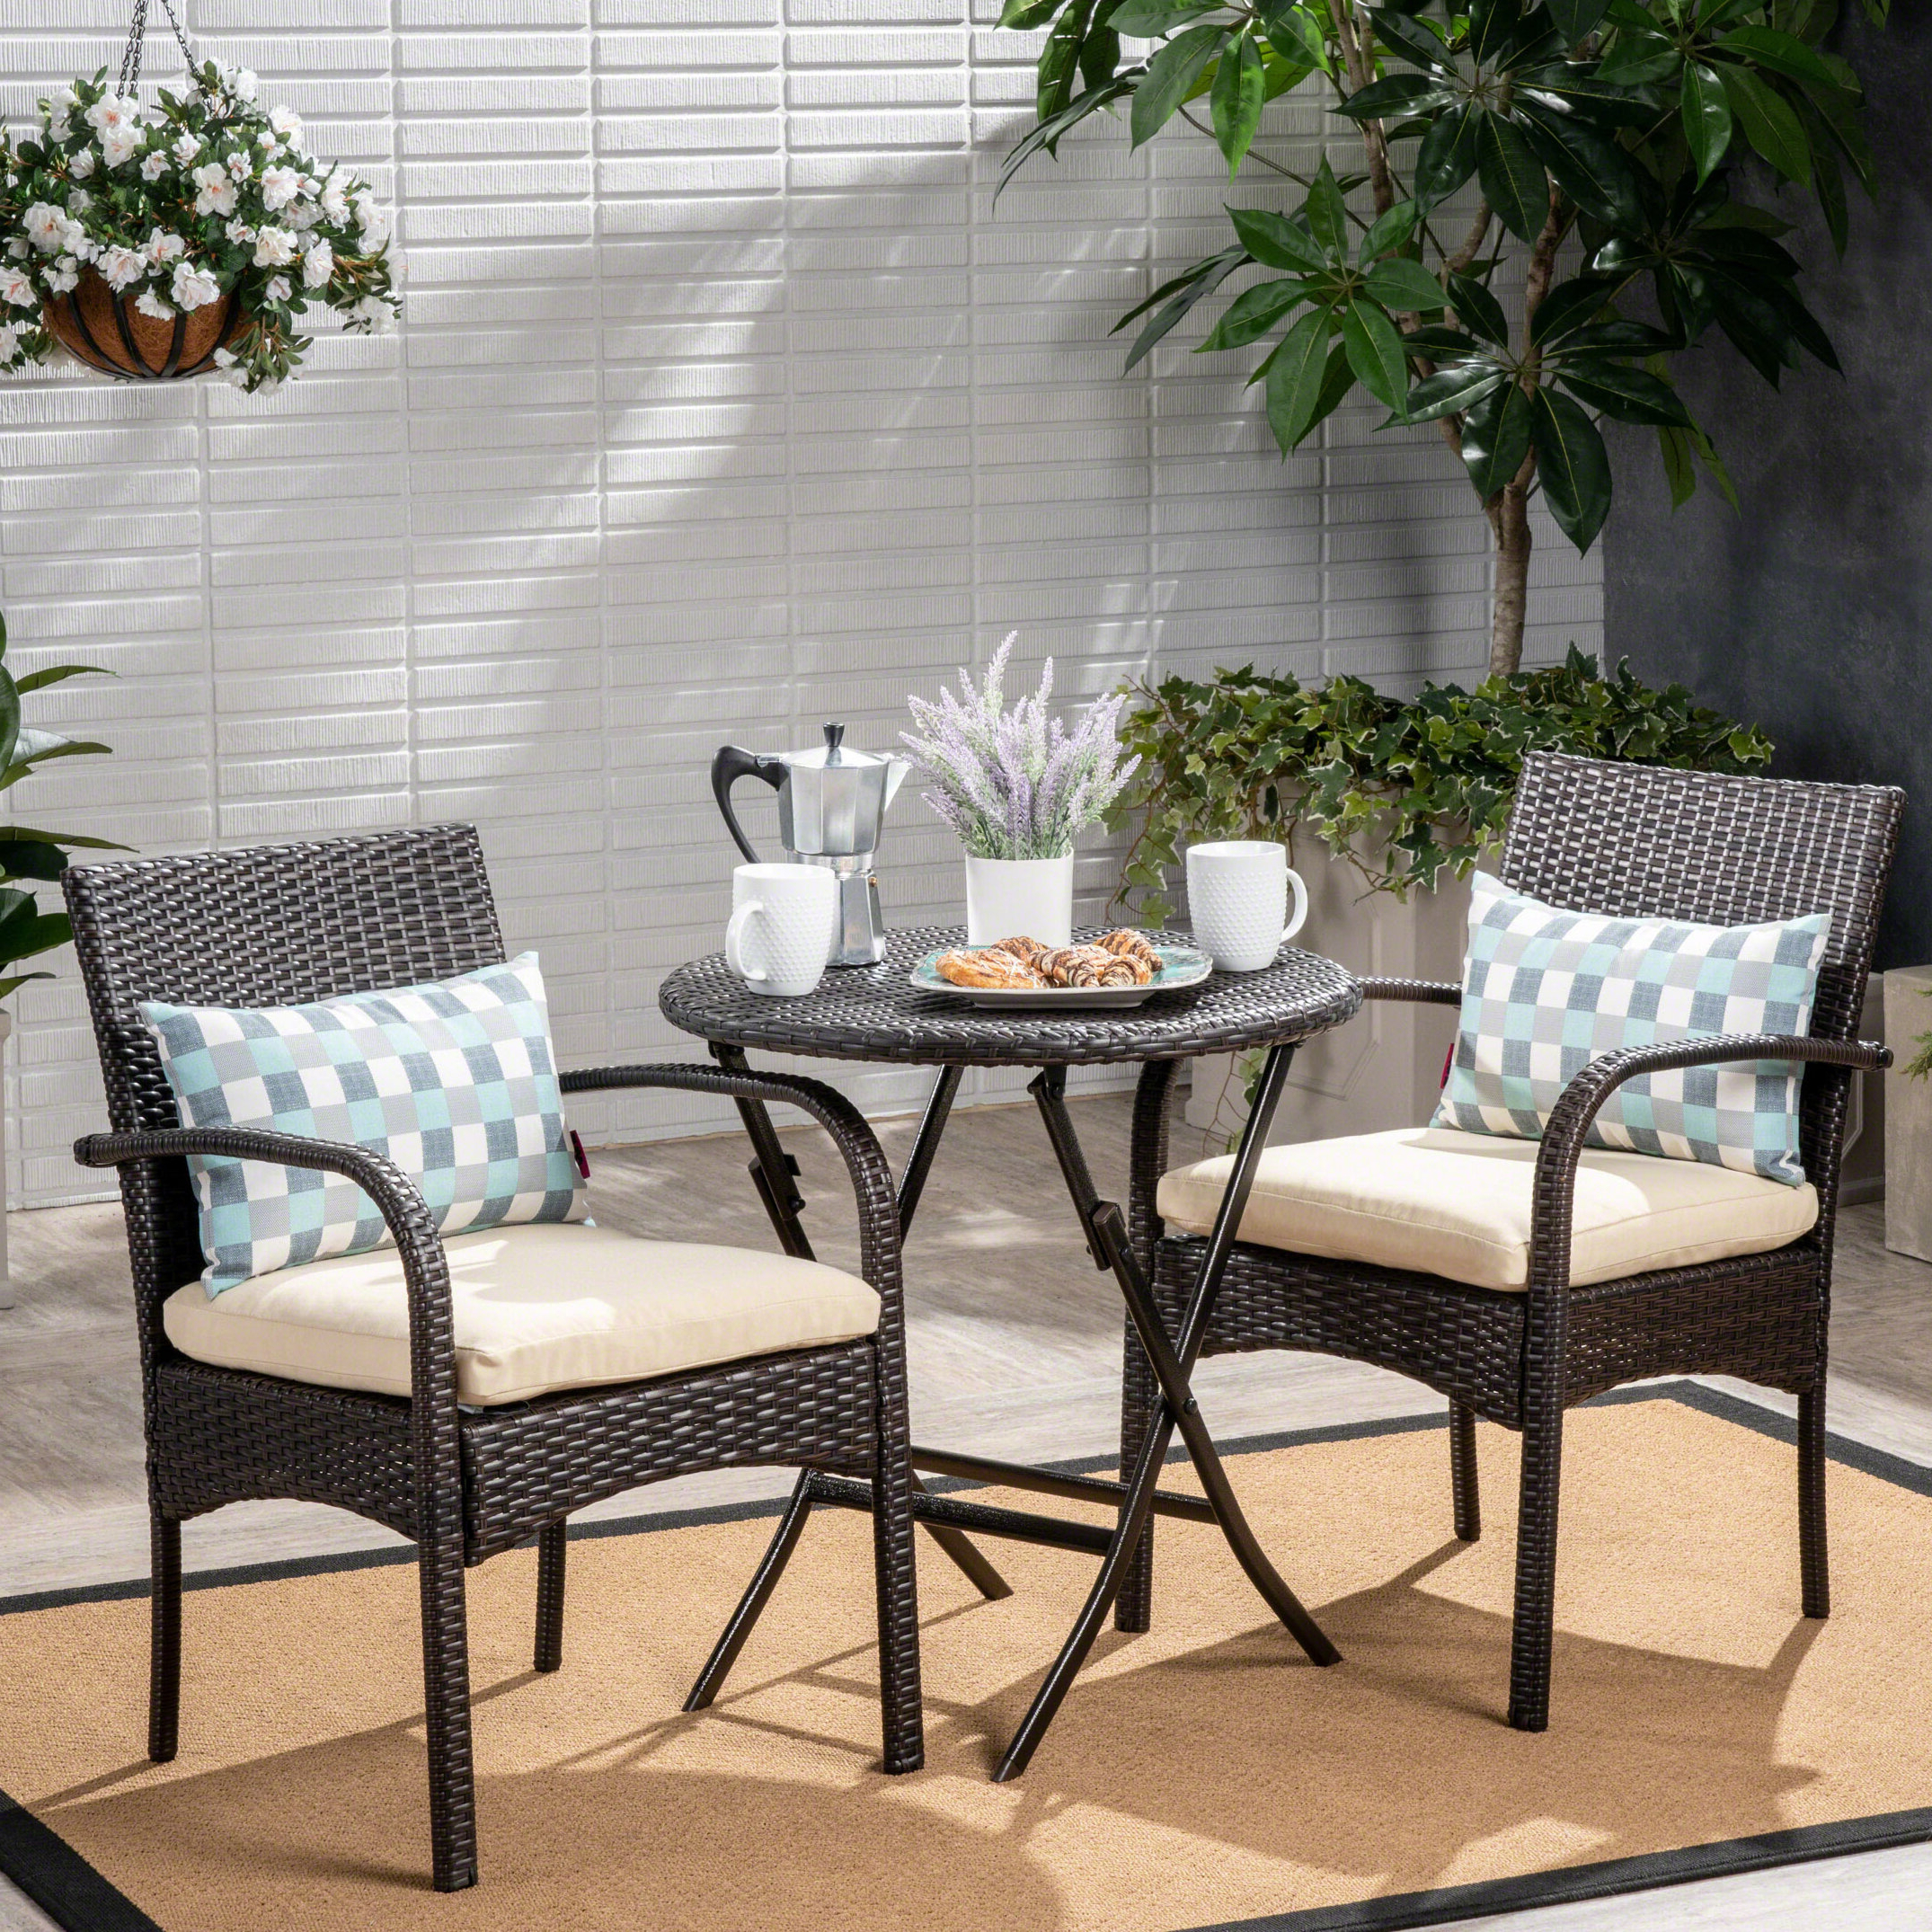 Fashionable 3 Piece Patio Lounger Sets Intended For Dereham Outdoor 3 Piece Bistro Set With Cushions (View 12 of 25)